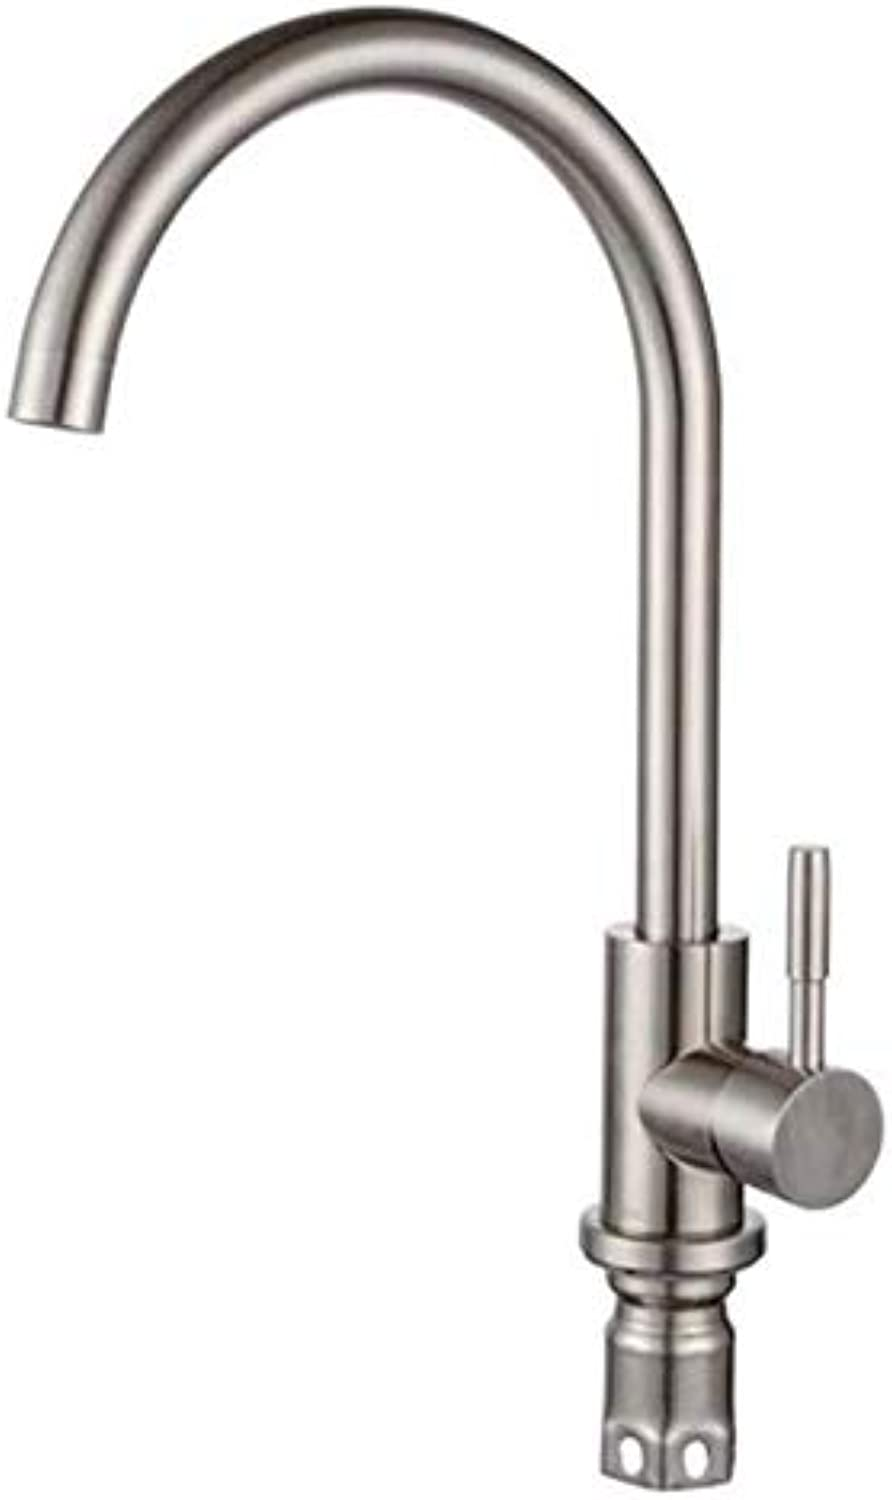 Retro Faucet Tap Kitchen Kitchen Sink Faucet Tap Kitchen Sink 360 redating Mixer Kitchen Bathroom